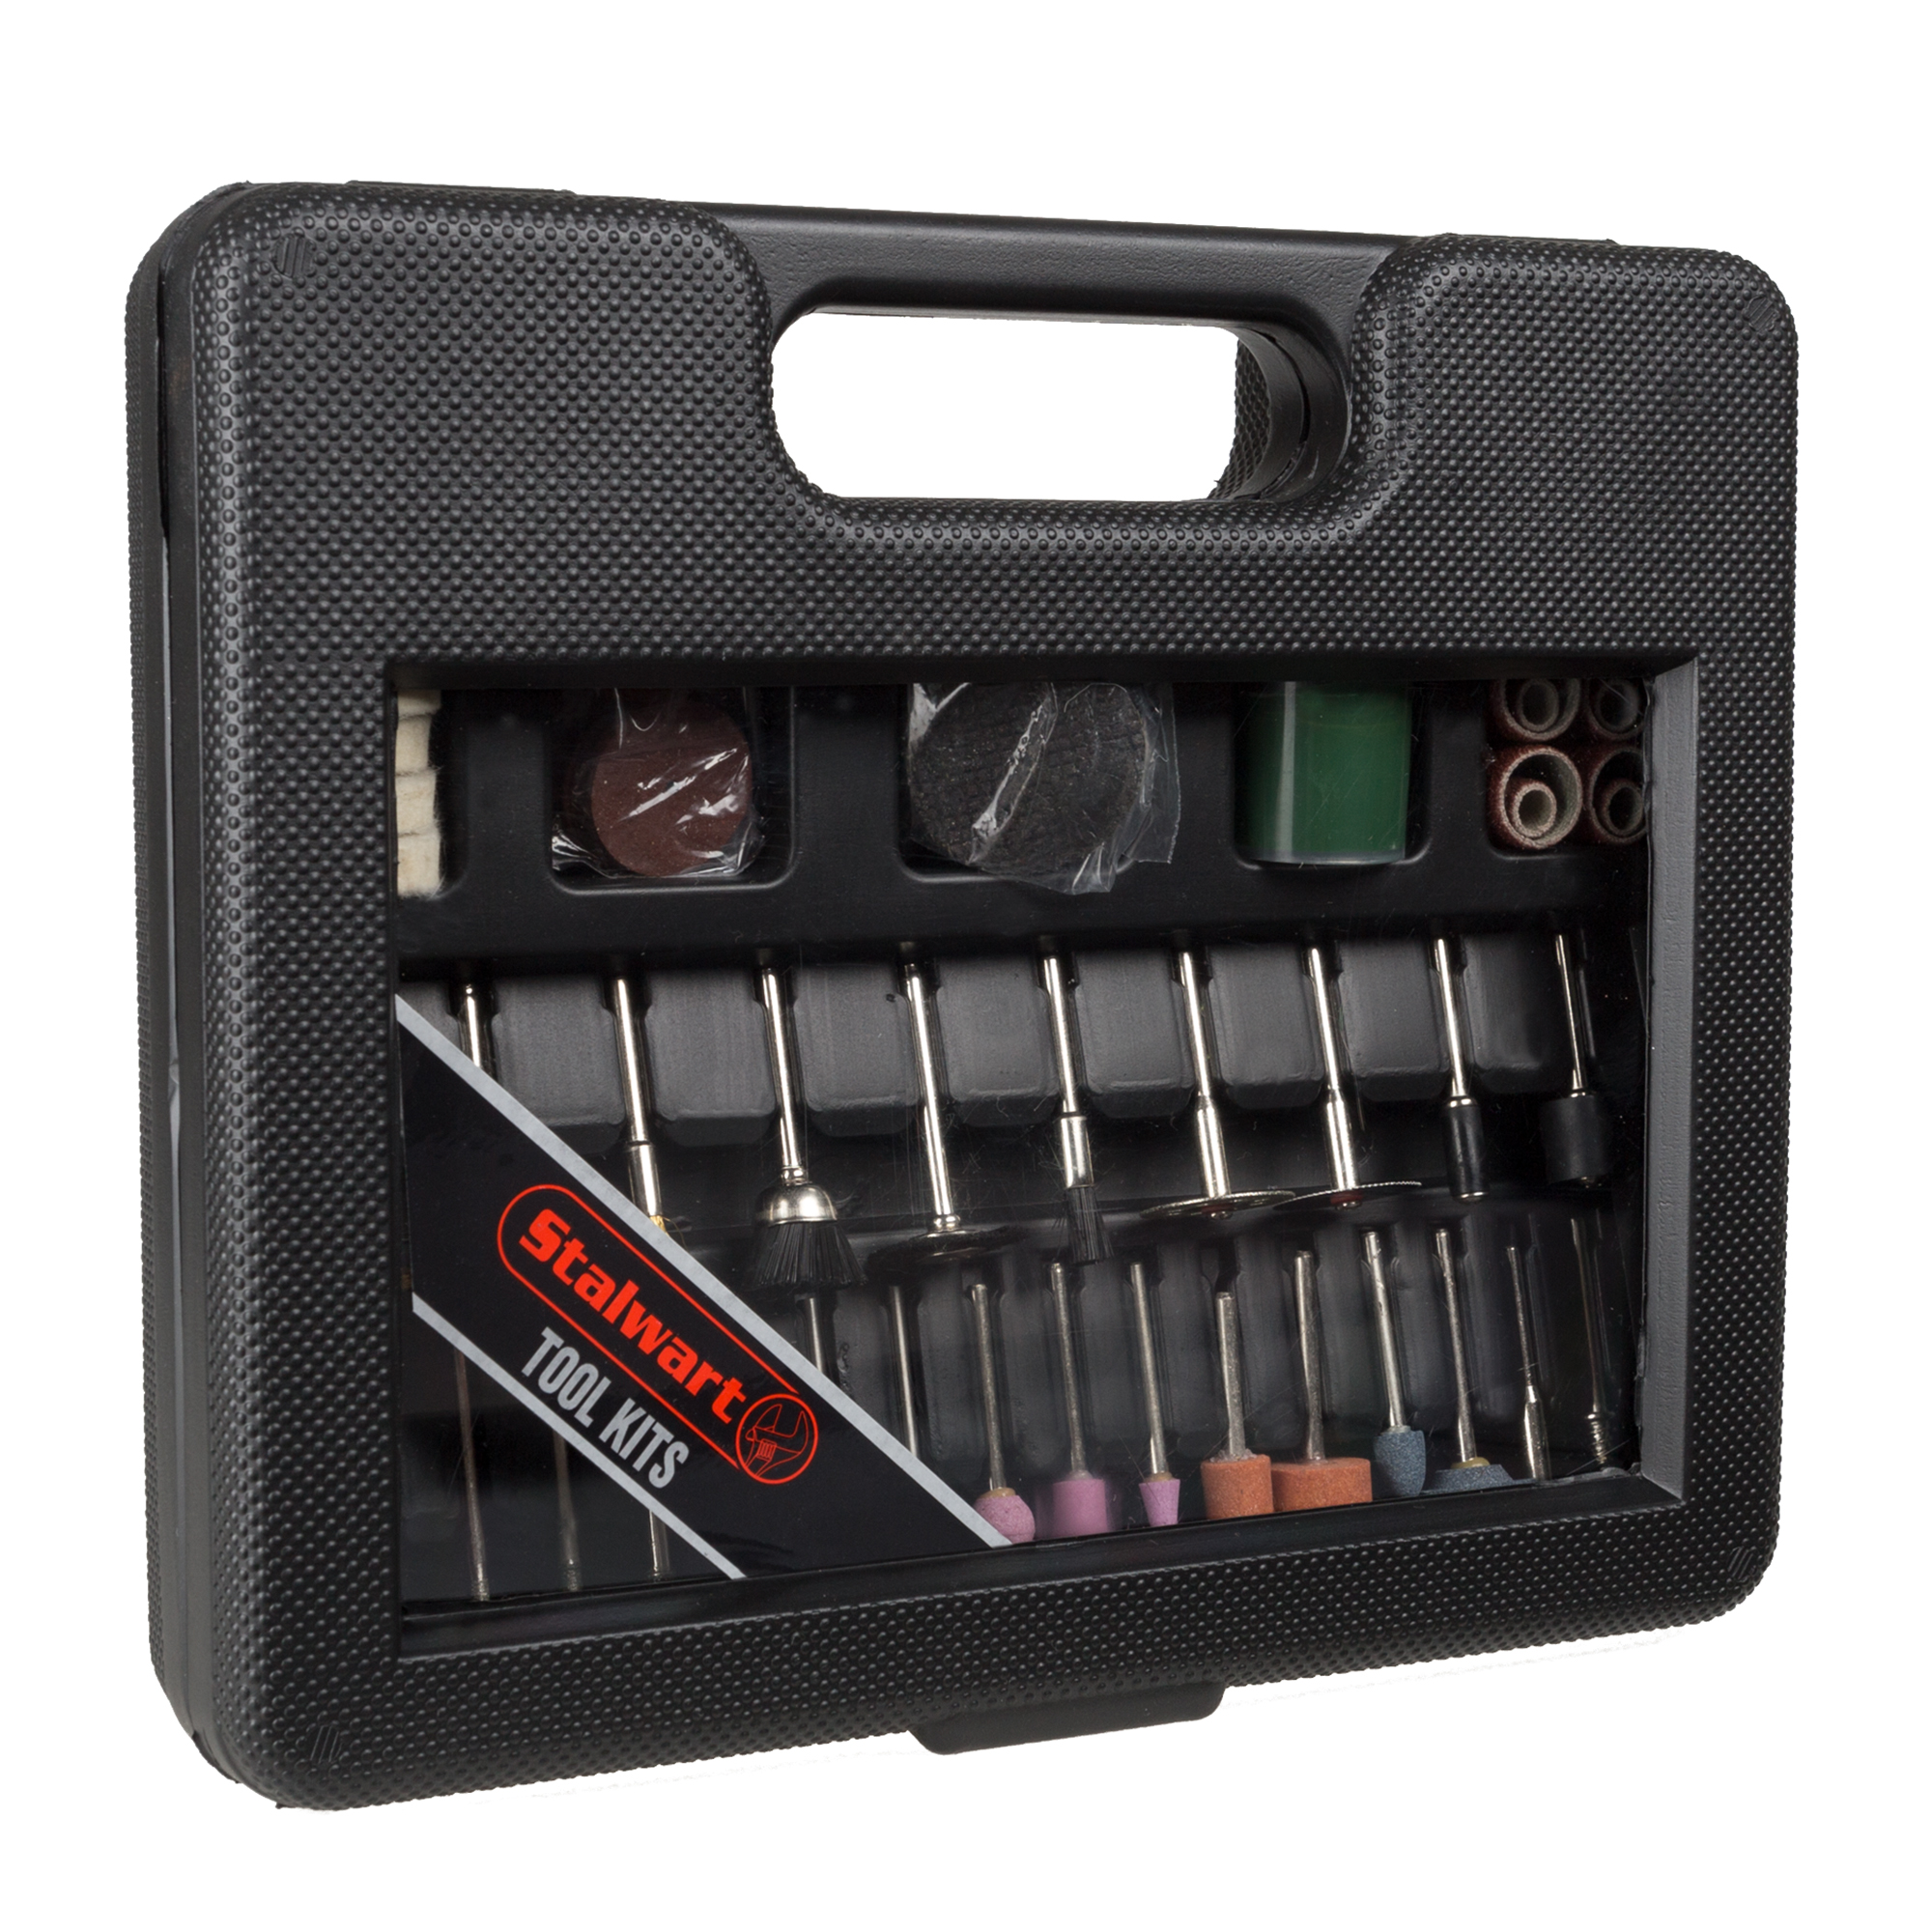 Stalwart 100-Piece Rotary Tool Accessories Kit With Carry Case